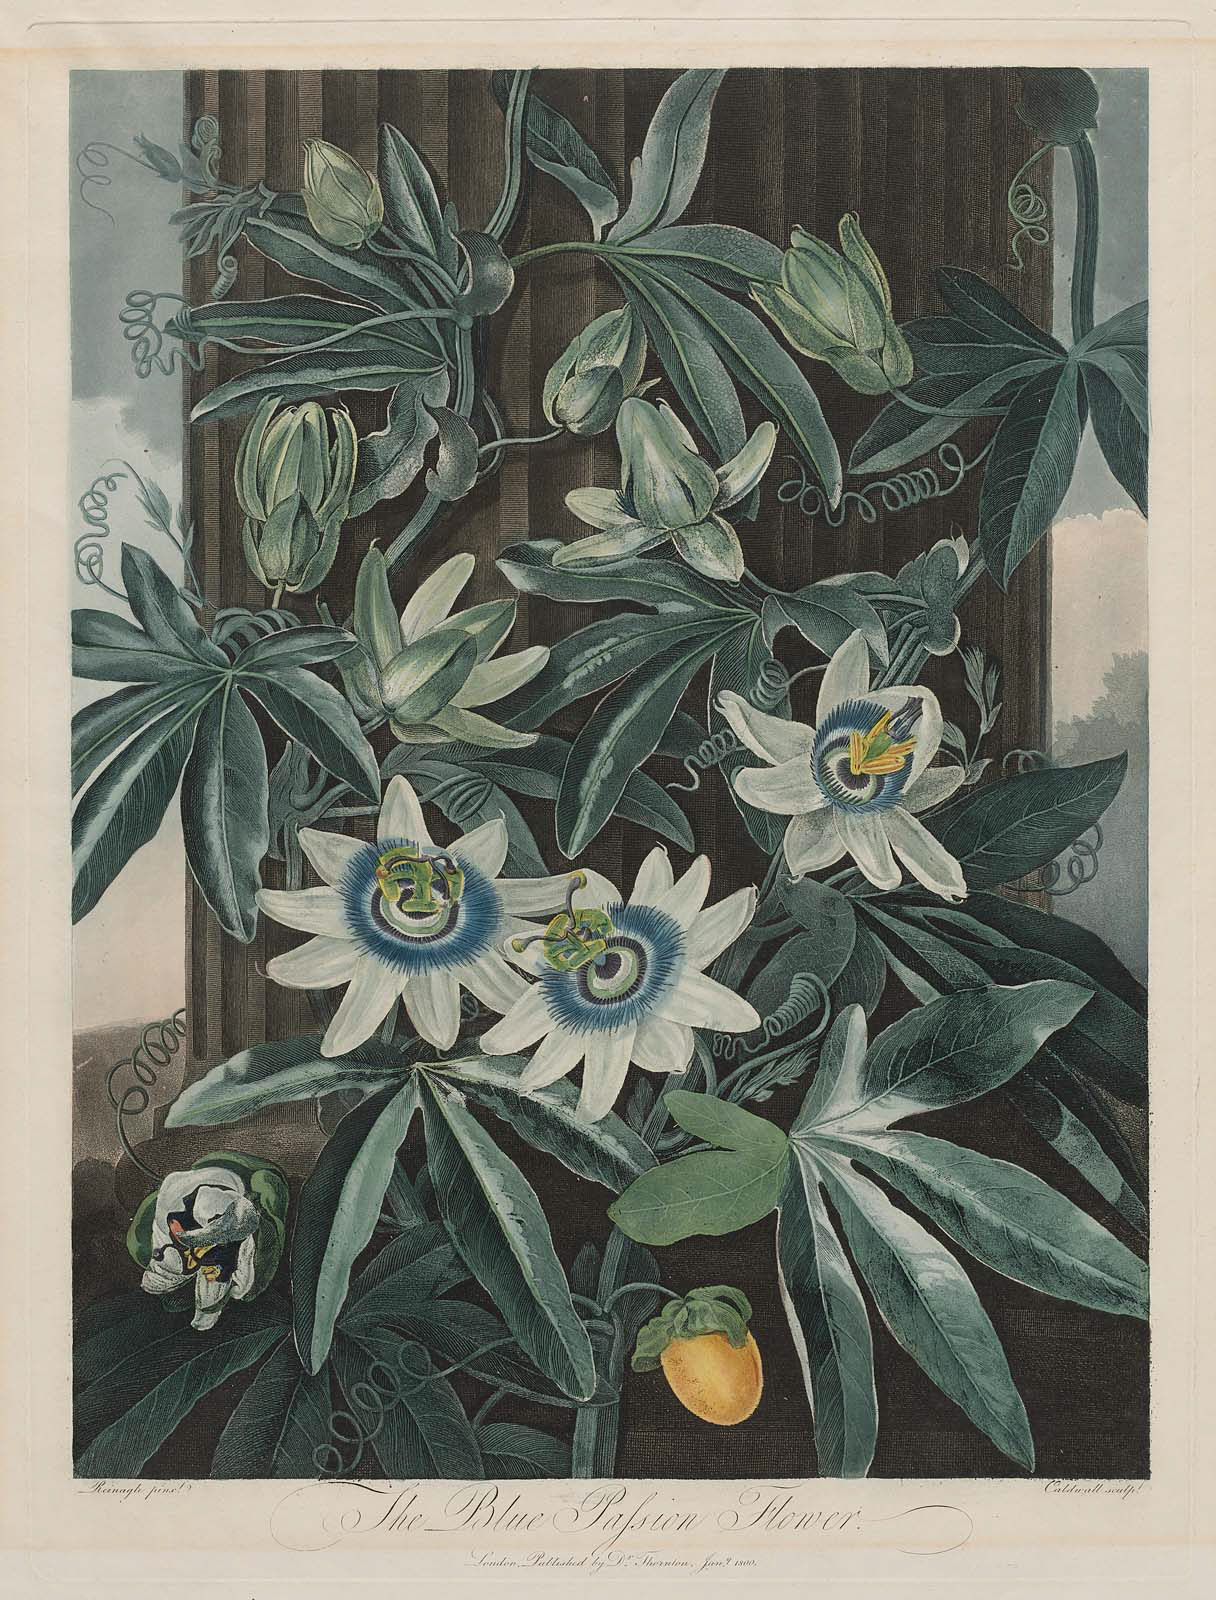 The Blue Passion Flower Passiflora Caerula Pl 17 From Dr Robert